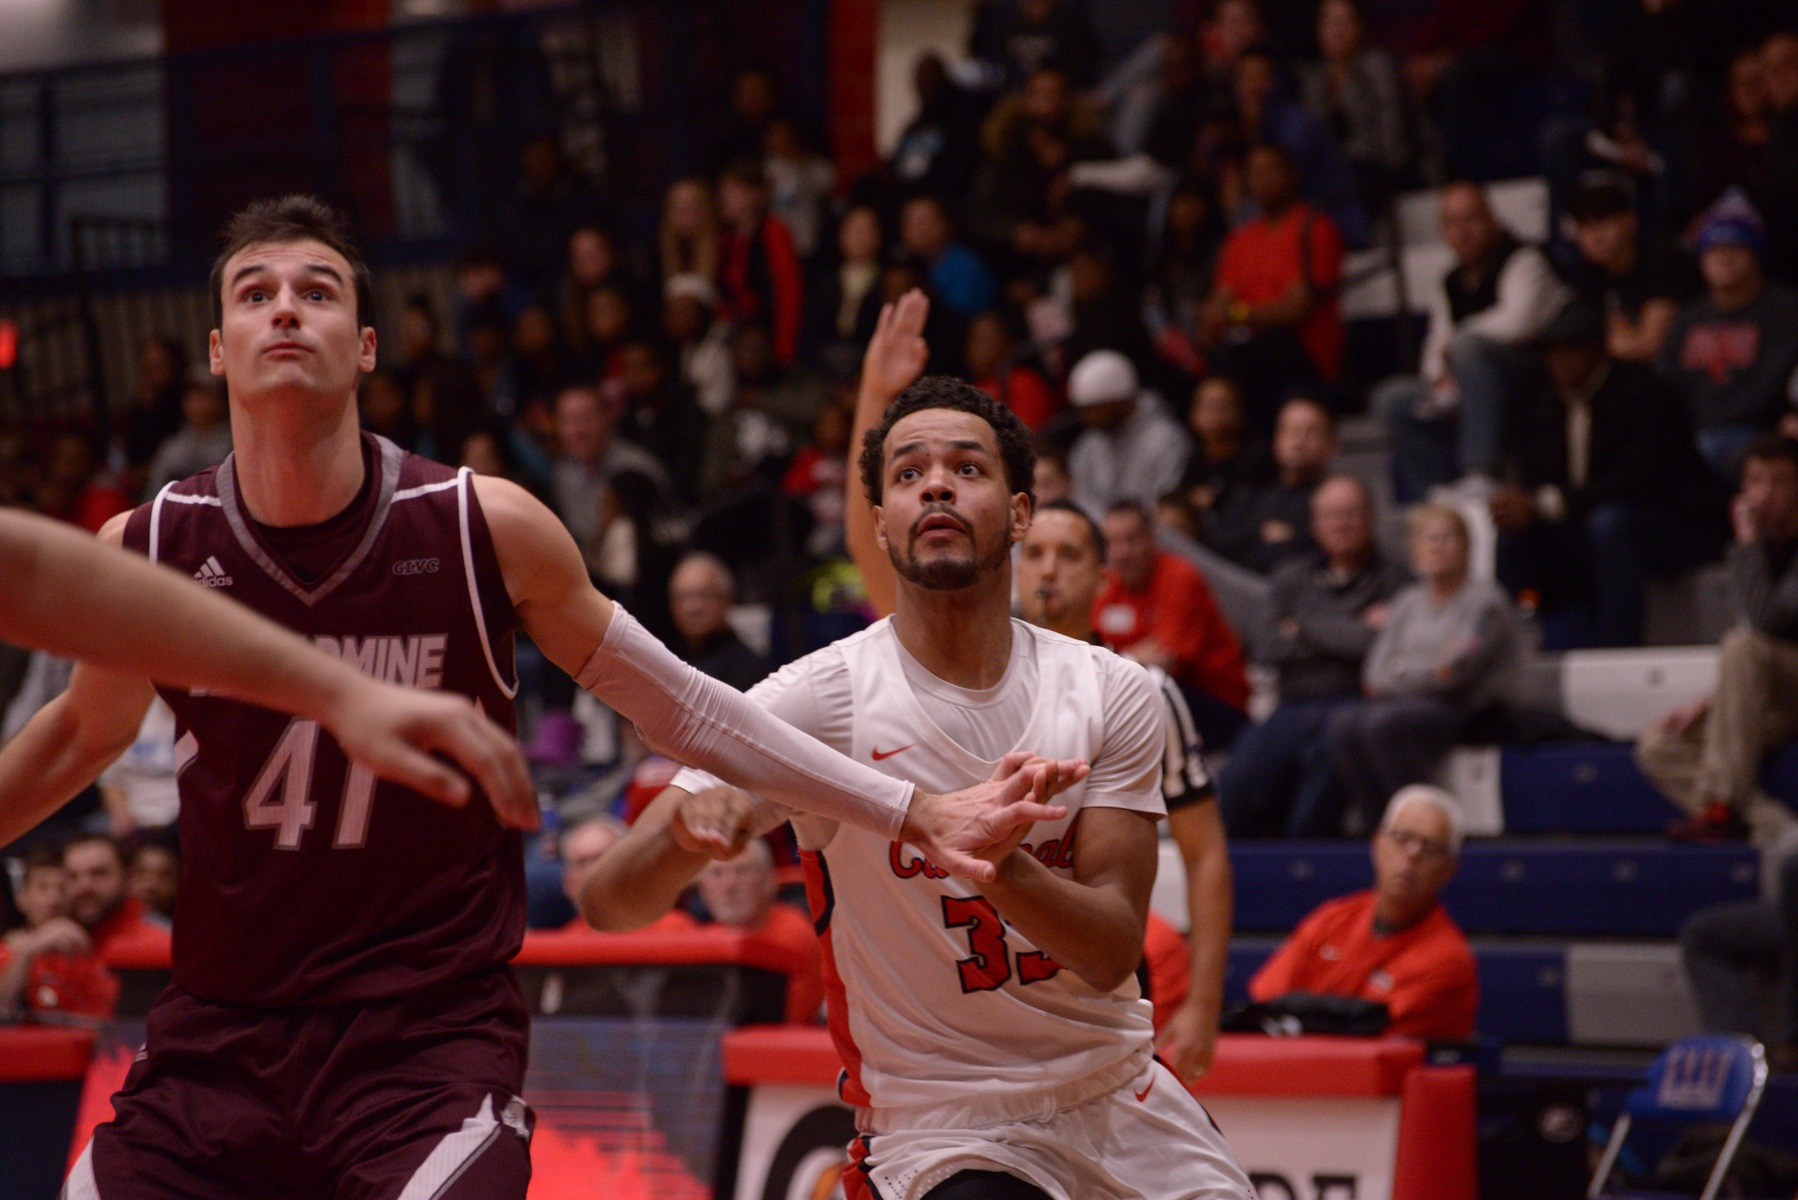 Men's Basketball registers 89-73 home victory over Grace Christian